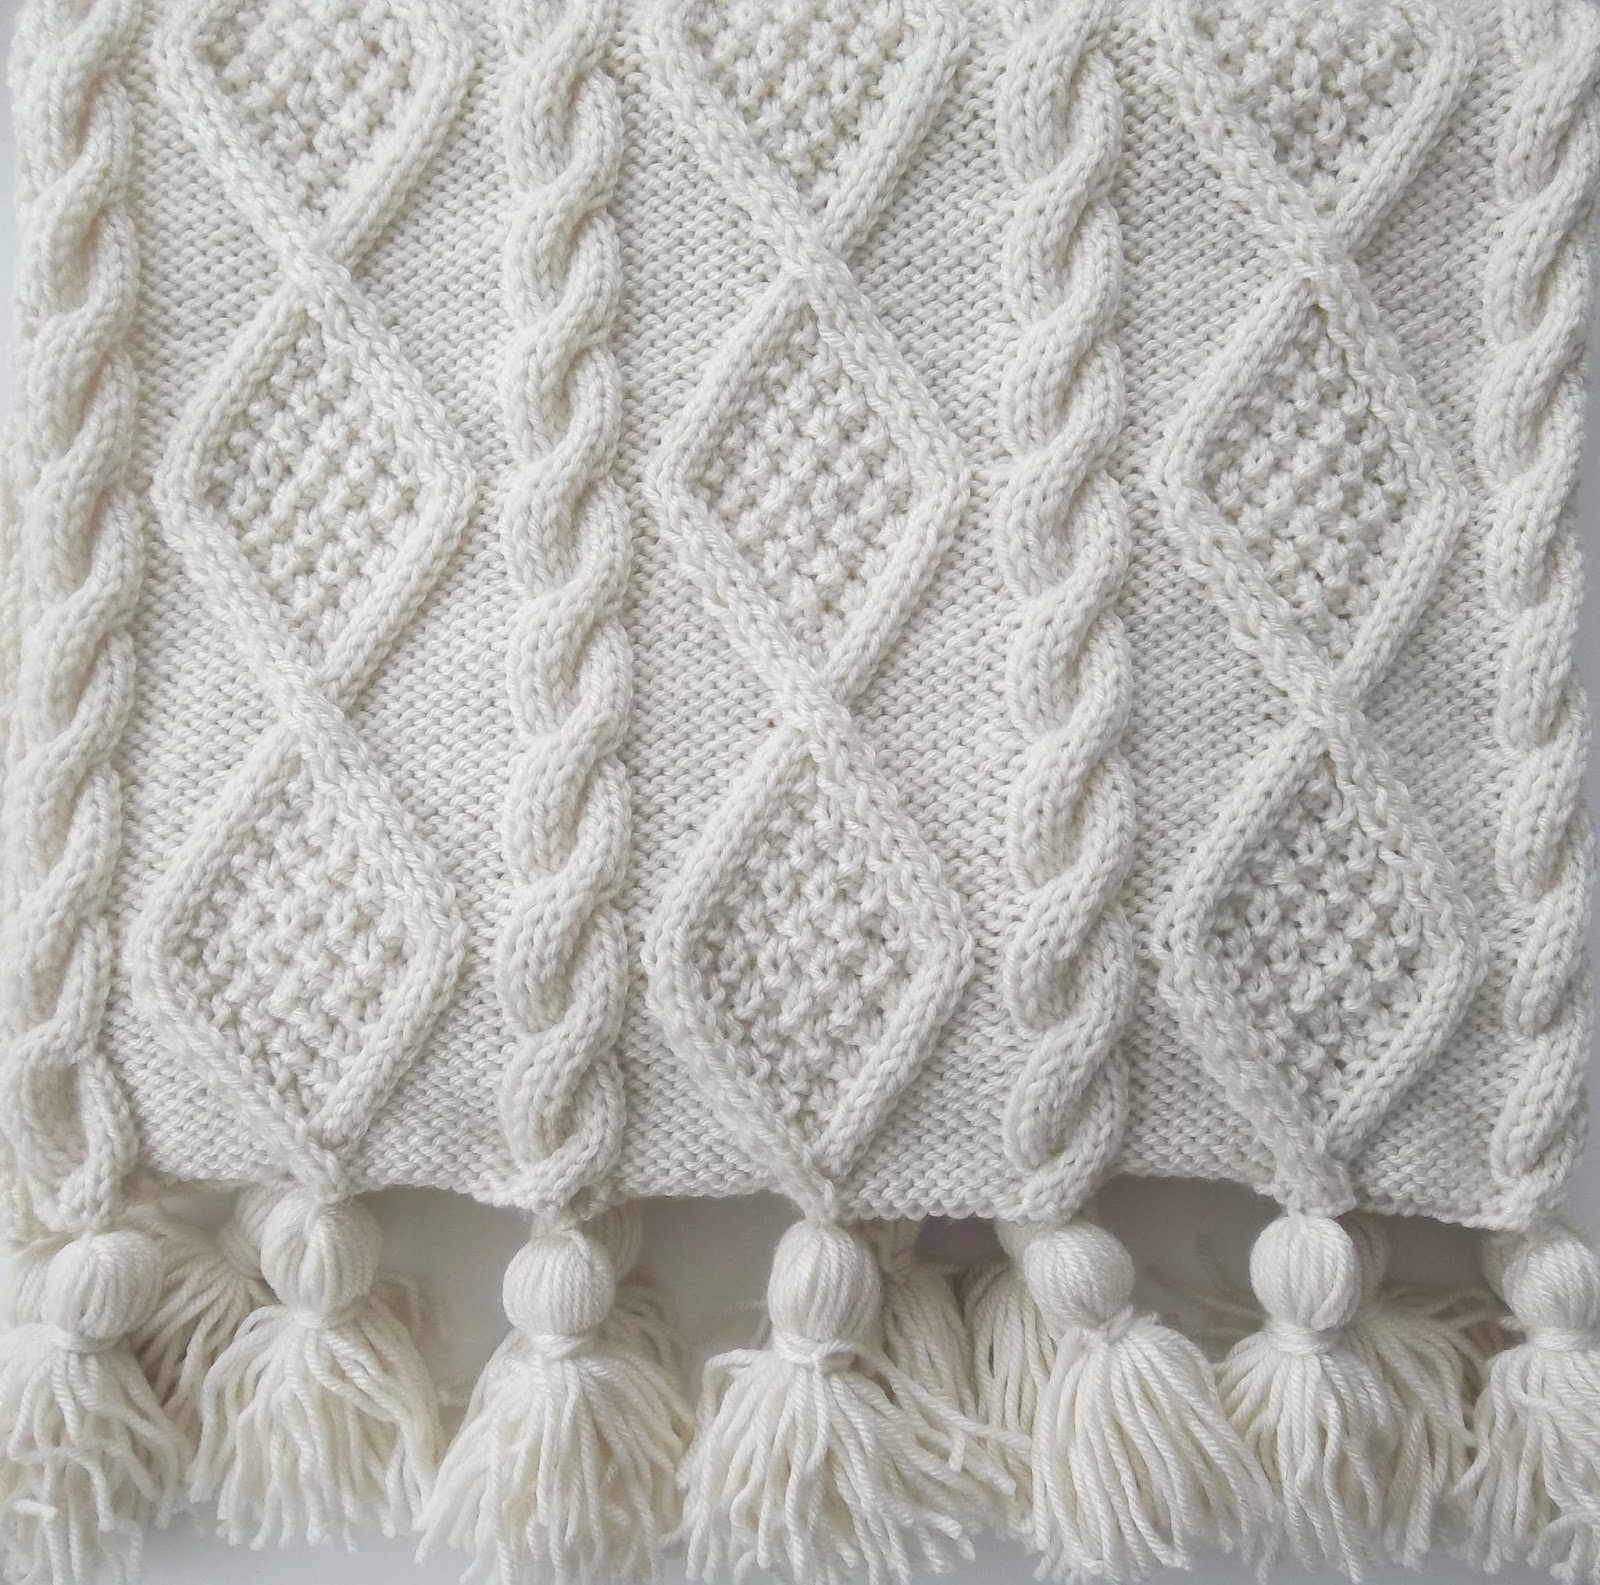 Hand Knitting Patterns Instructions : The design studio